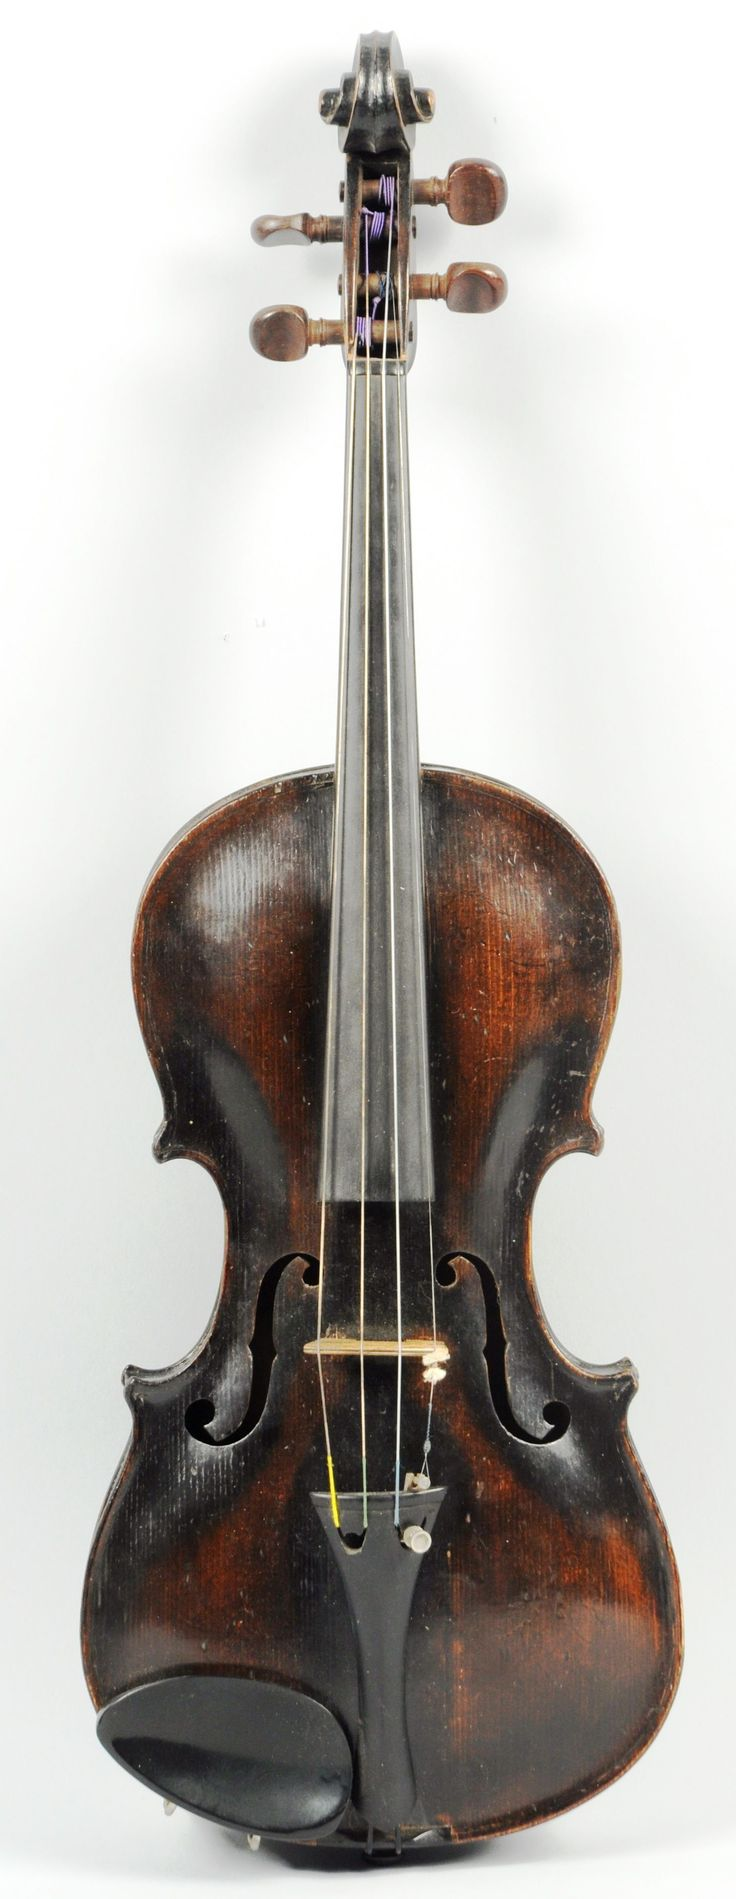 Jacobus Steiner Model Violin. Full size and in playing condition. #Steiner #Violin #MorphyAuctions